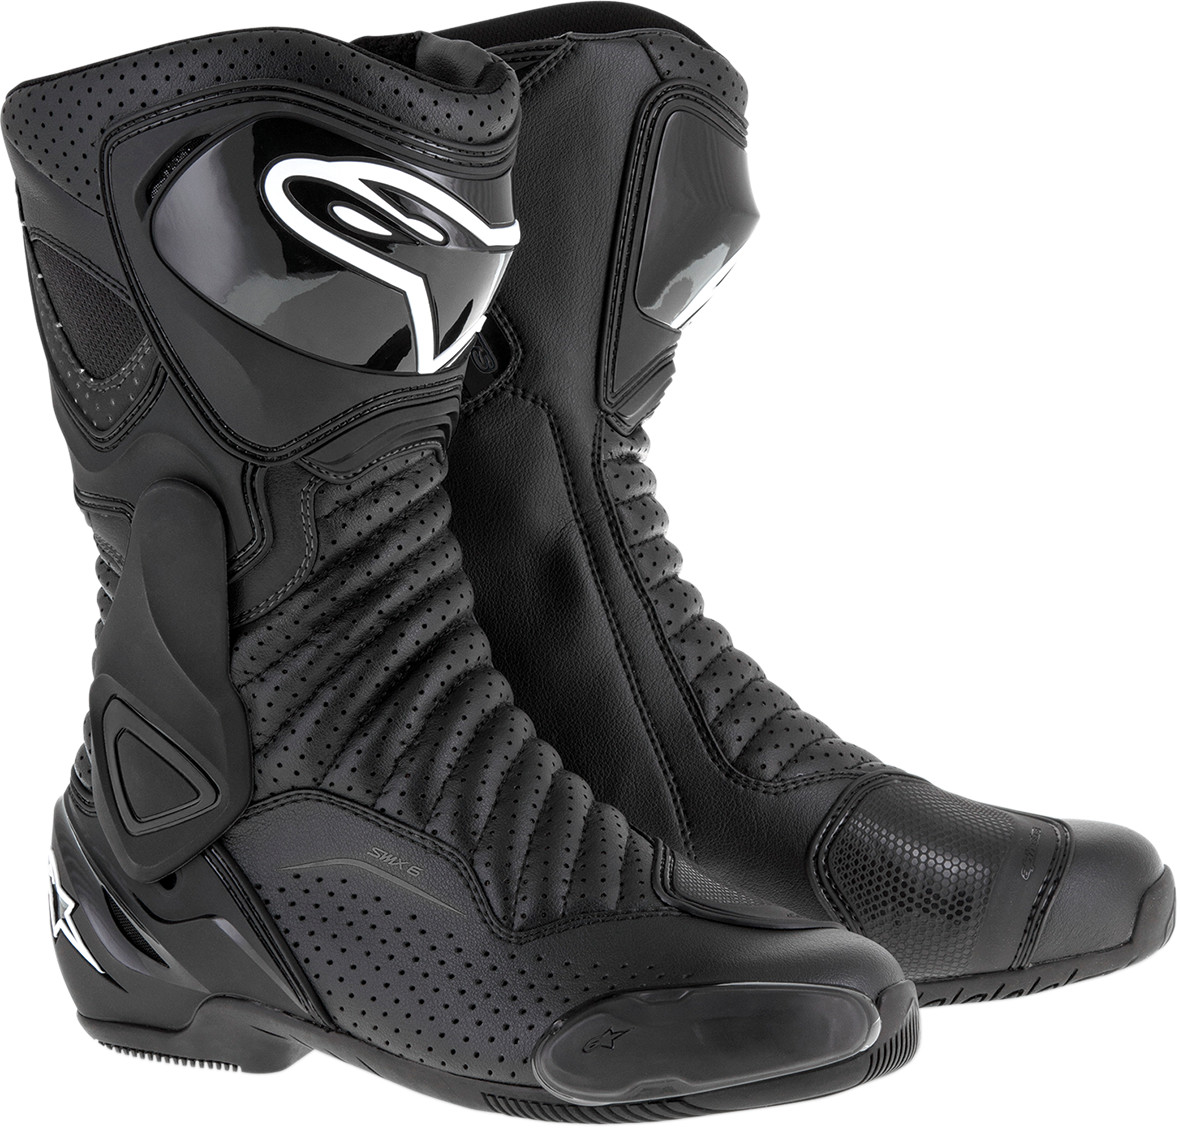 Alpinestars Smx 6 V2 Street Riding Motorcycle Boots All